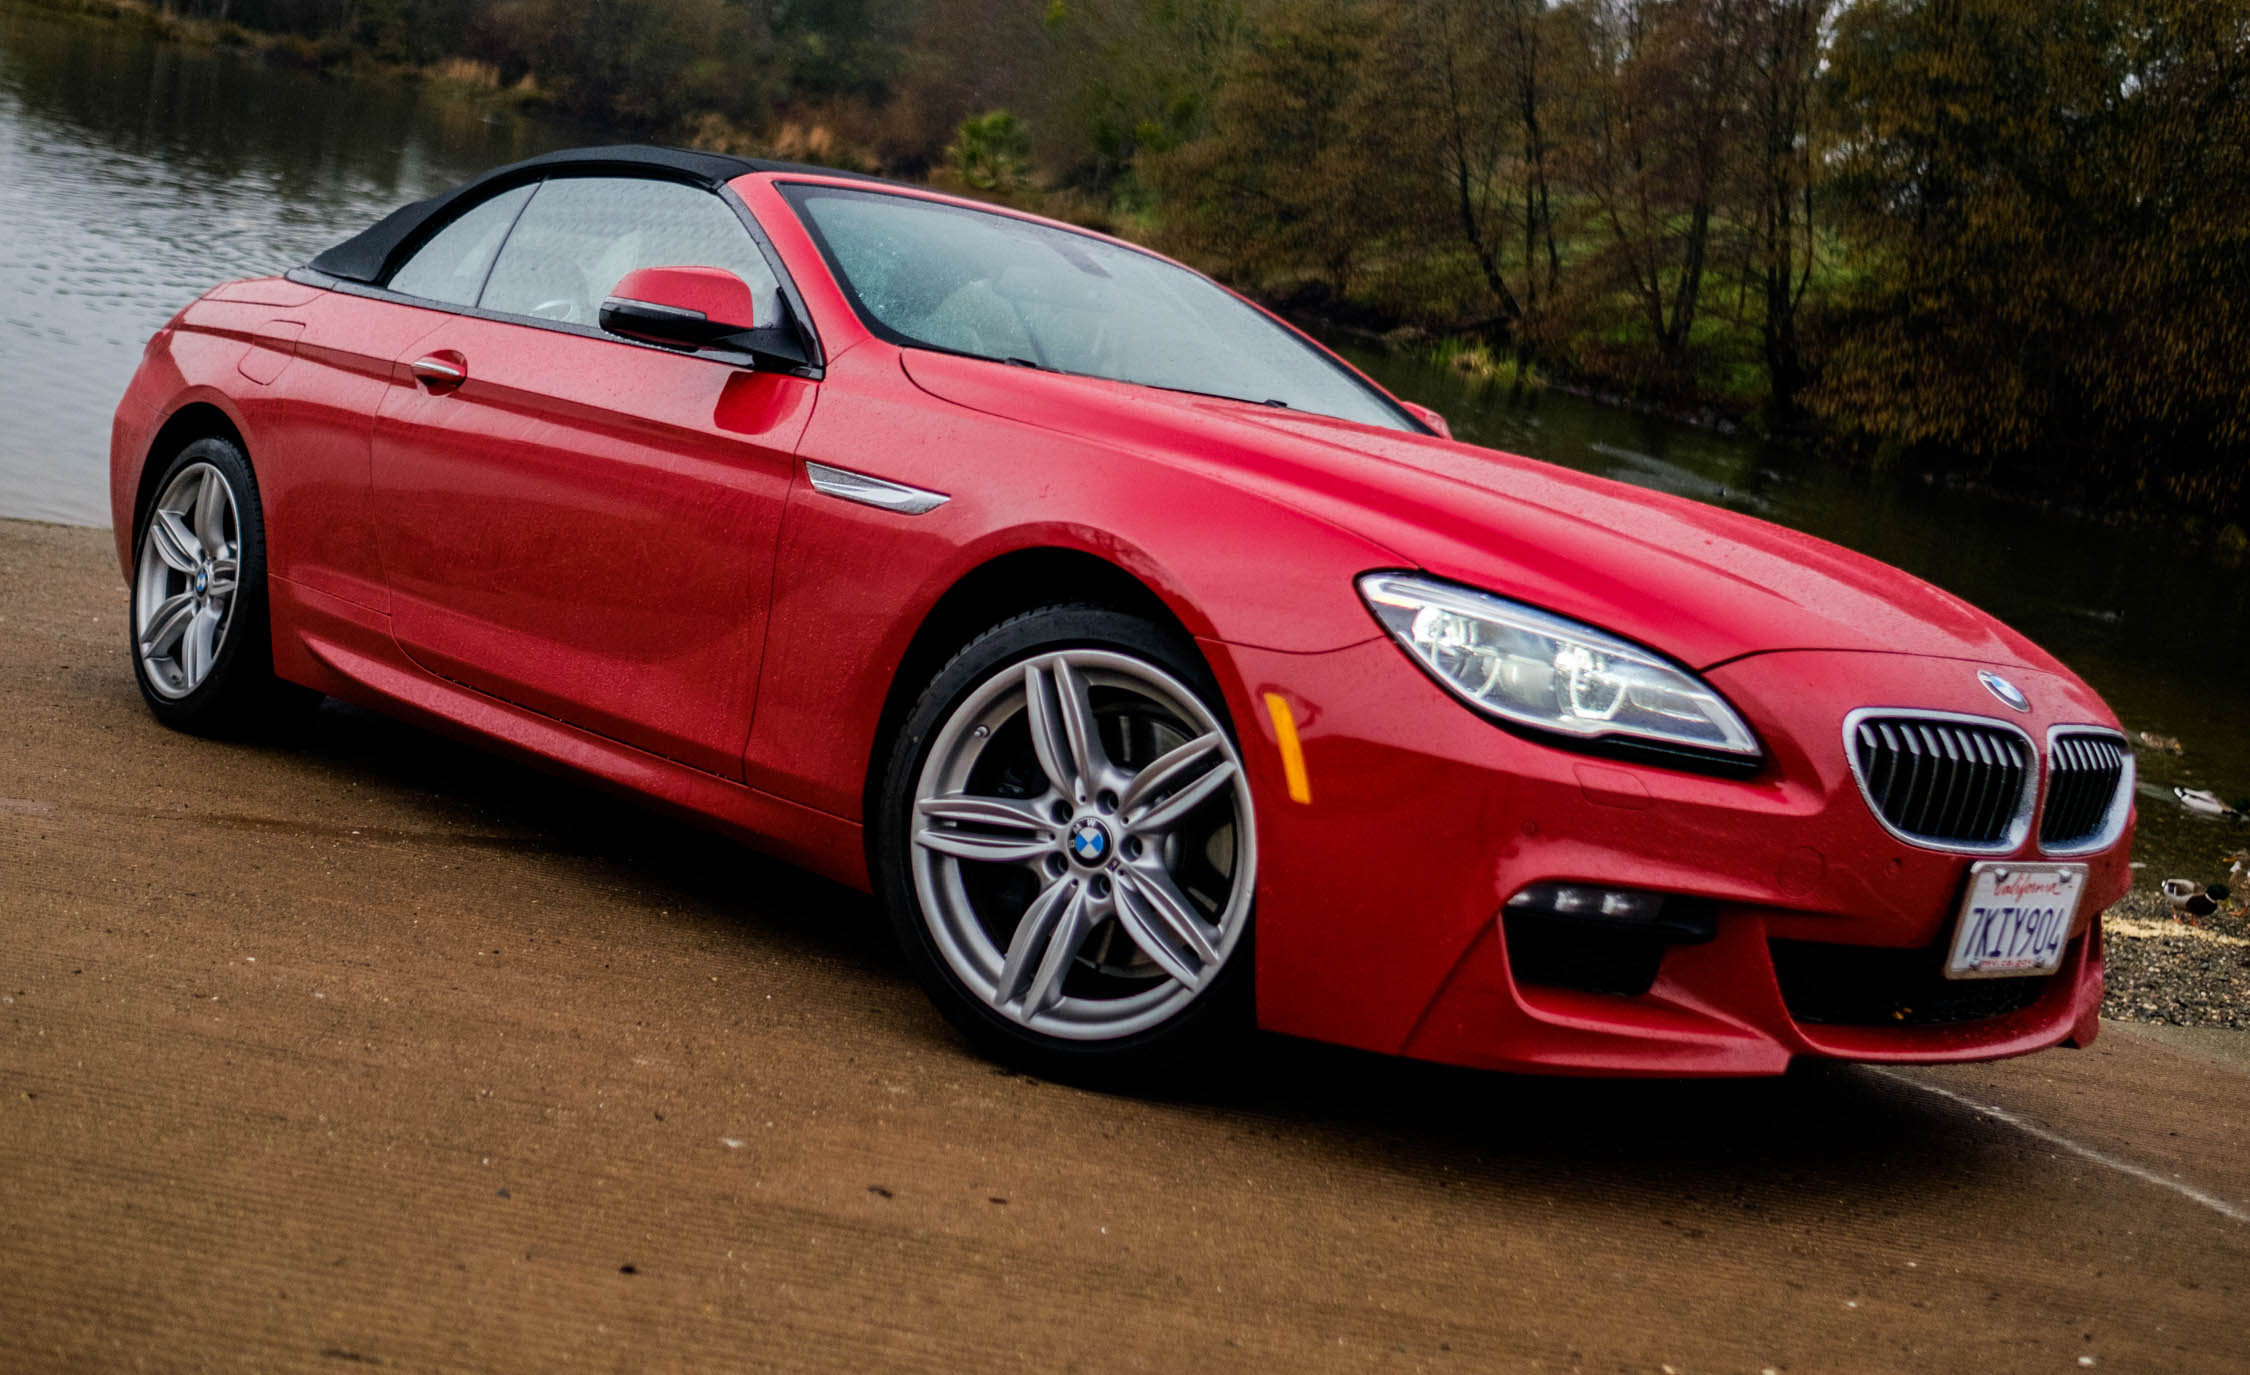 2016 BMW 640i Convertible Exterior Full Side and Front